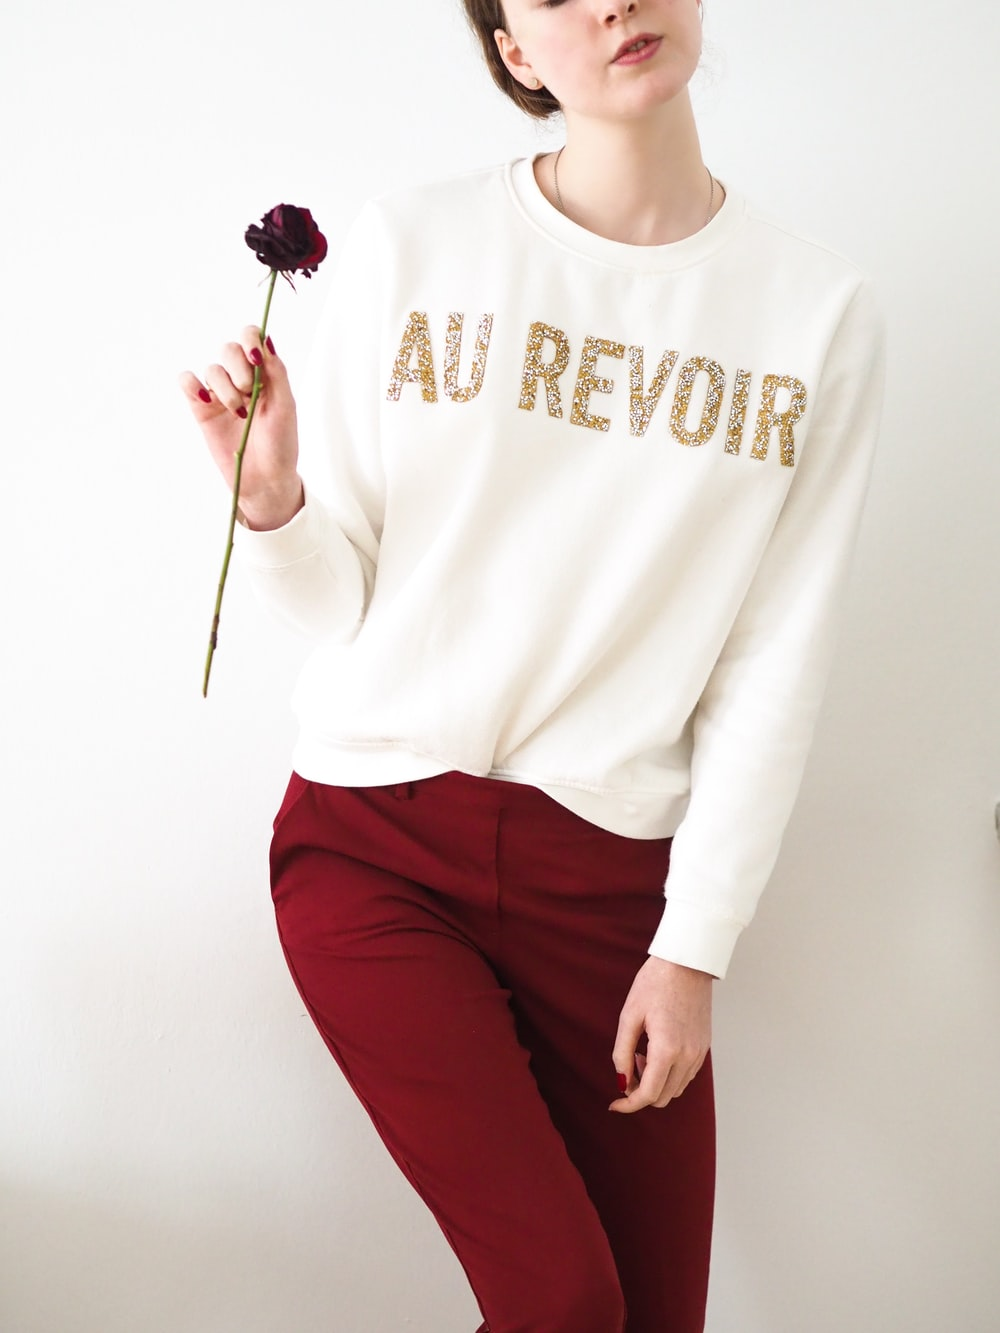 woman in white long sleeve shirt and red pants holding lollipop